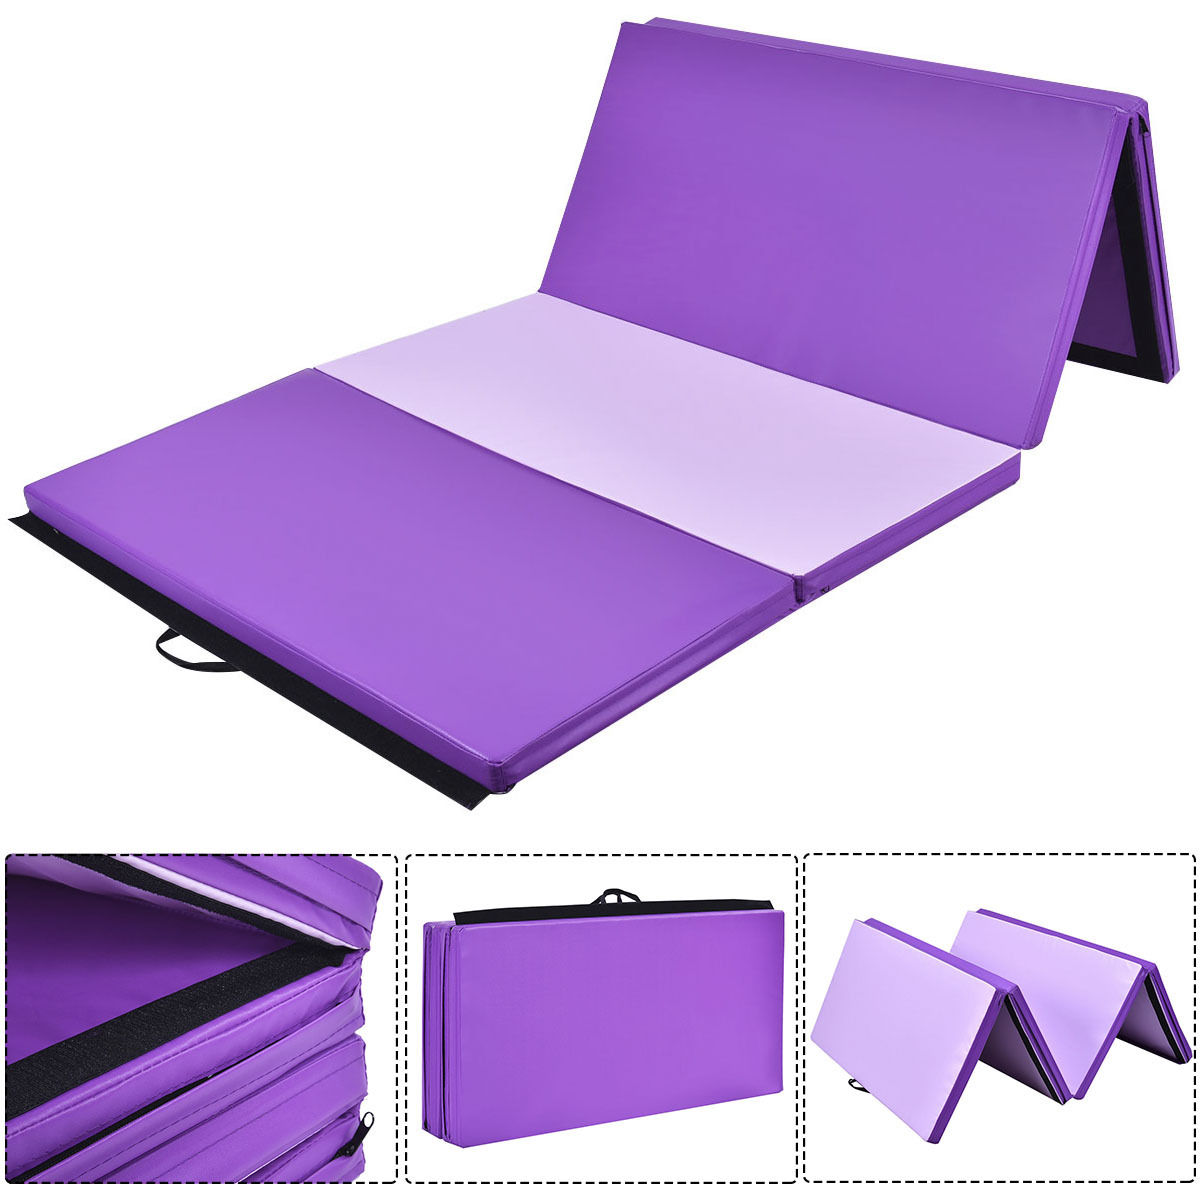 pu ramp x presell gymnastic exercise gym fitness days for home mat wedge folding colors panel multi gymnastics tumbling mats incline